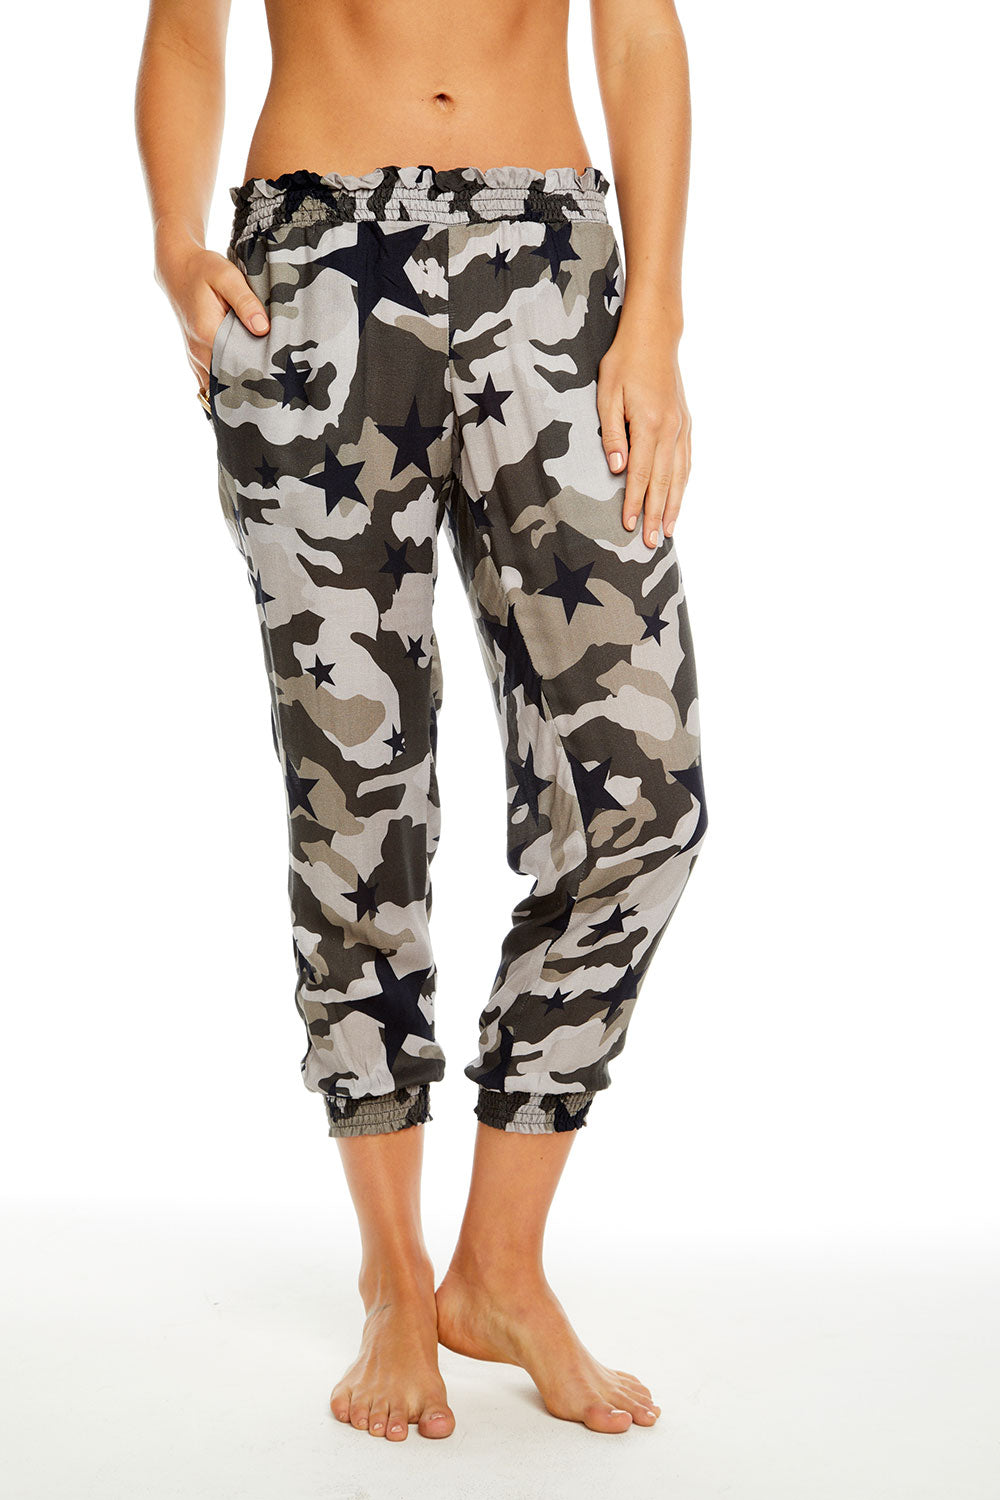 Camo Stars WOMENS - chaserbrand